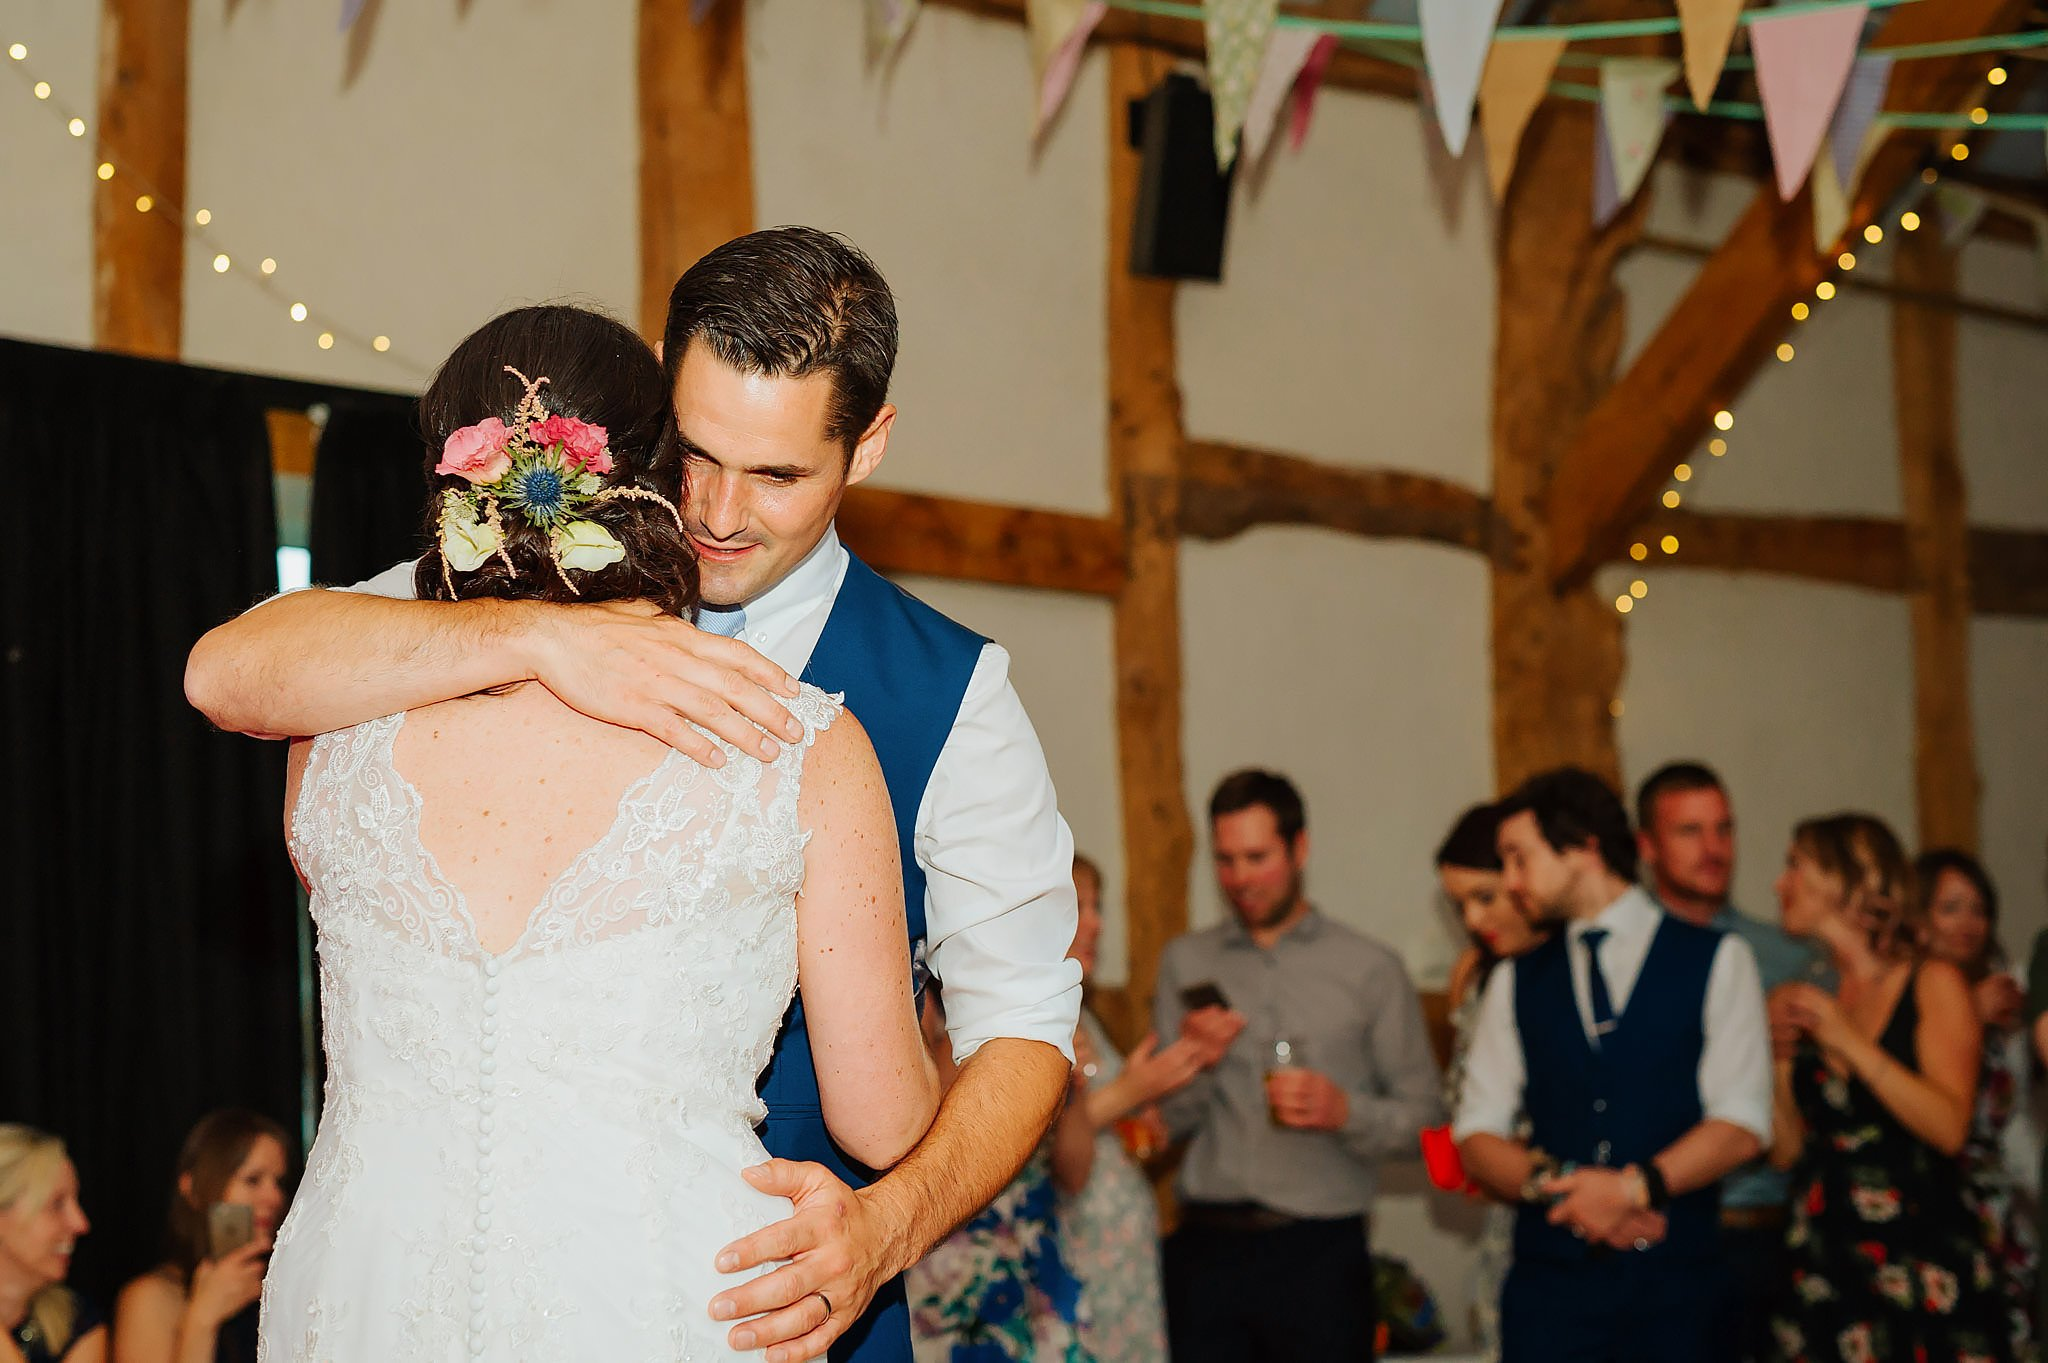 Wedding photography at Hellens Manor in Herefordshire, West Midlands | Shelley + Ian 133